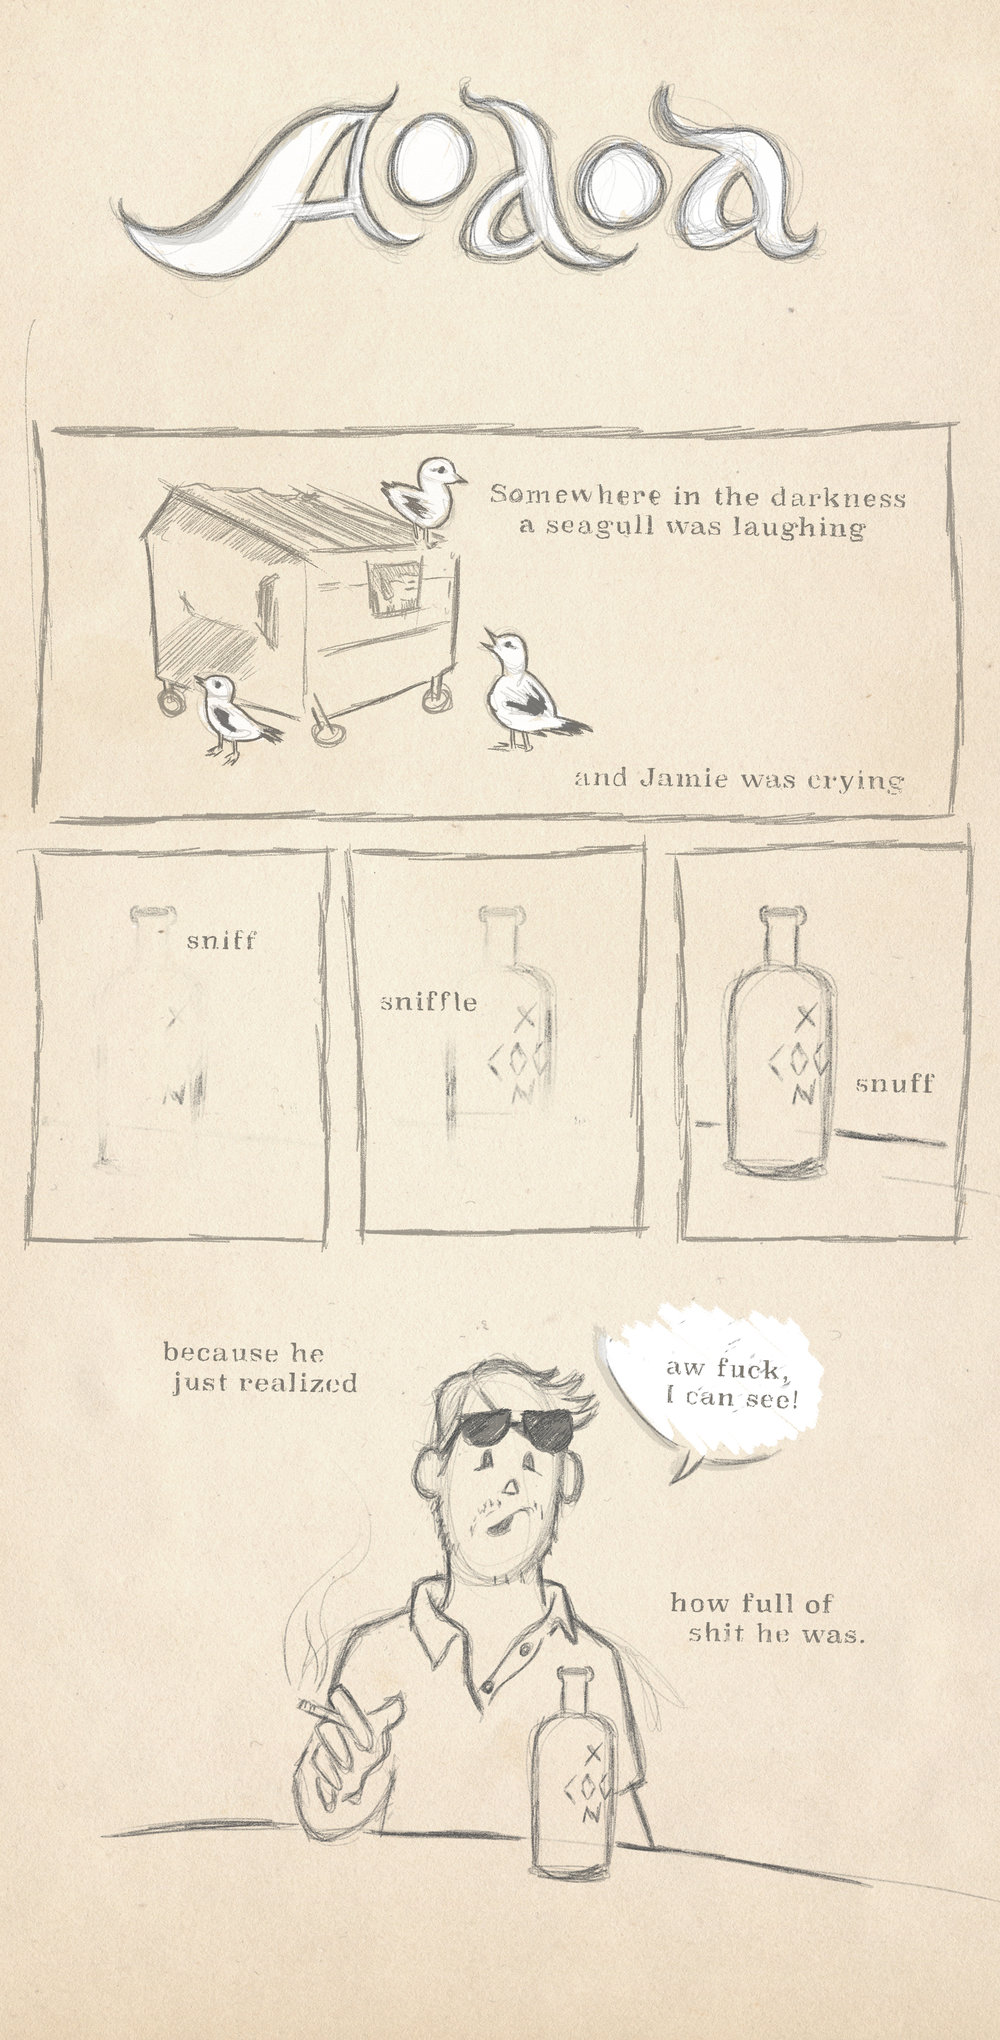 Chapter one of the HeyRoger webcomic AOAOA.